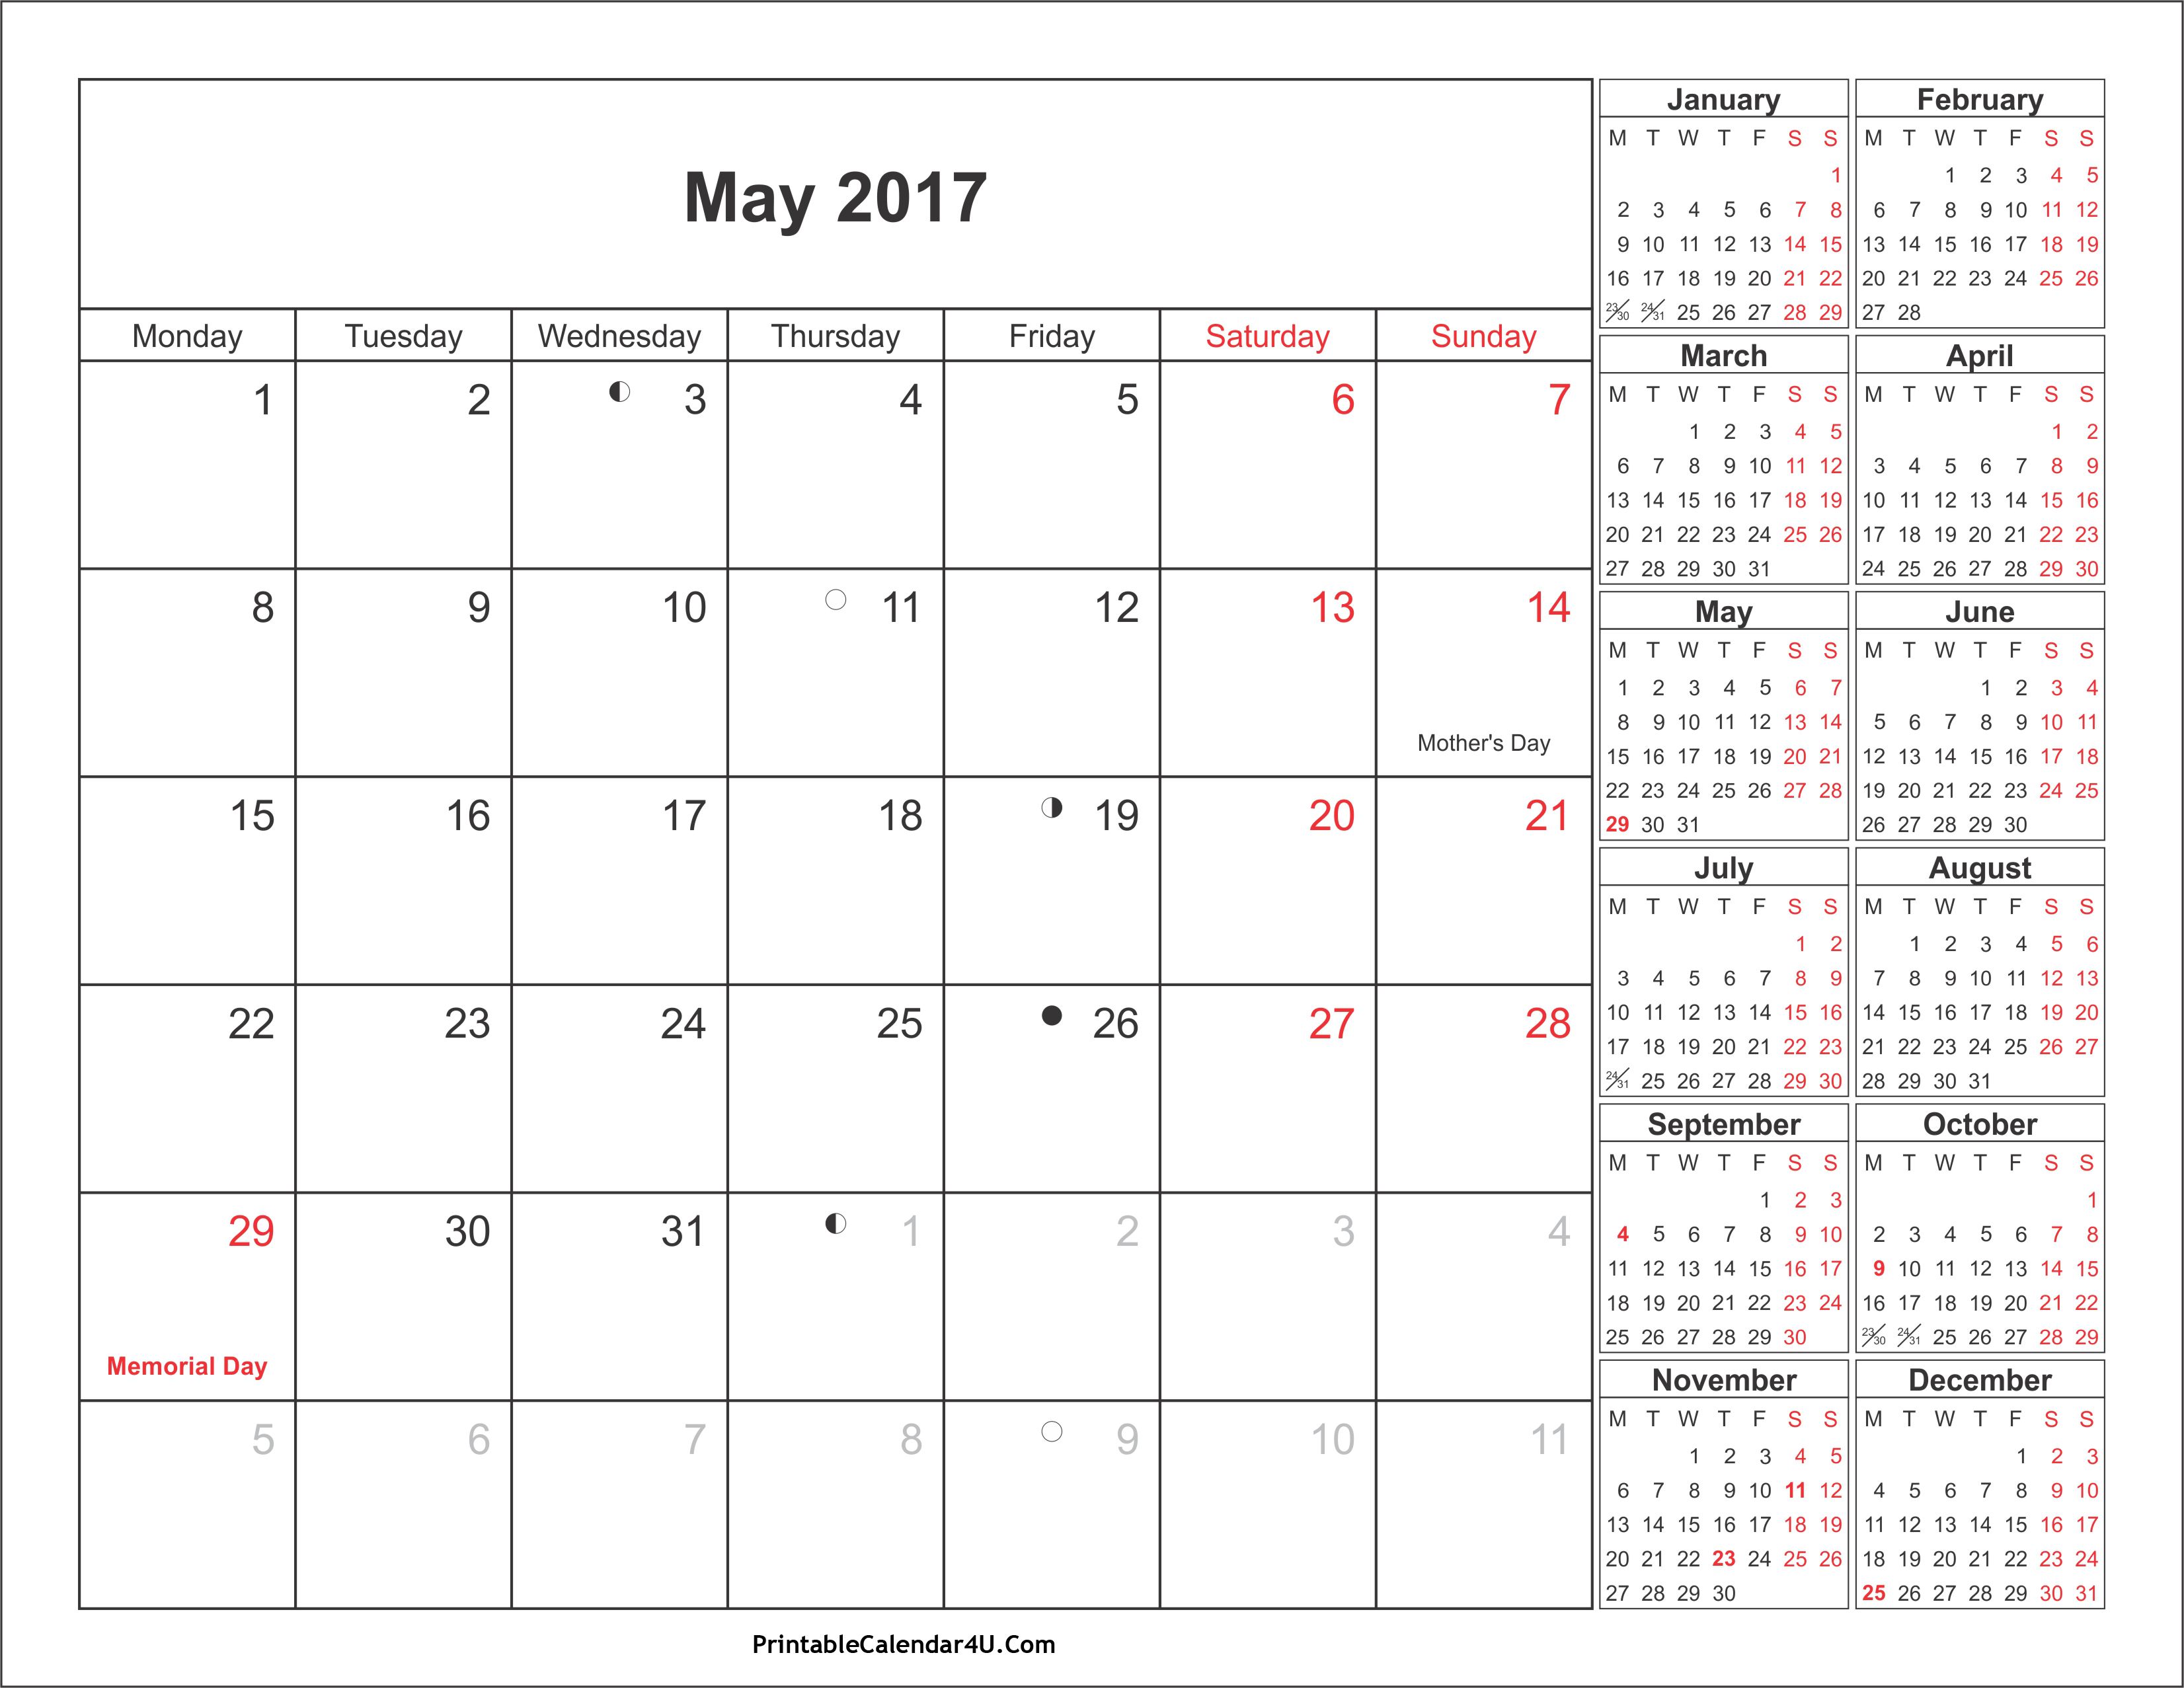 May 2017 Calendar with Holidays 4 Printable Calendar 2016 2017